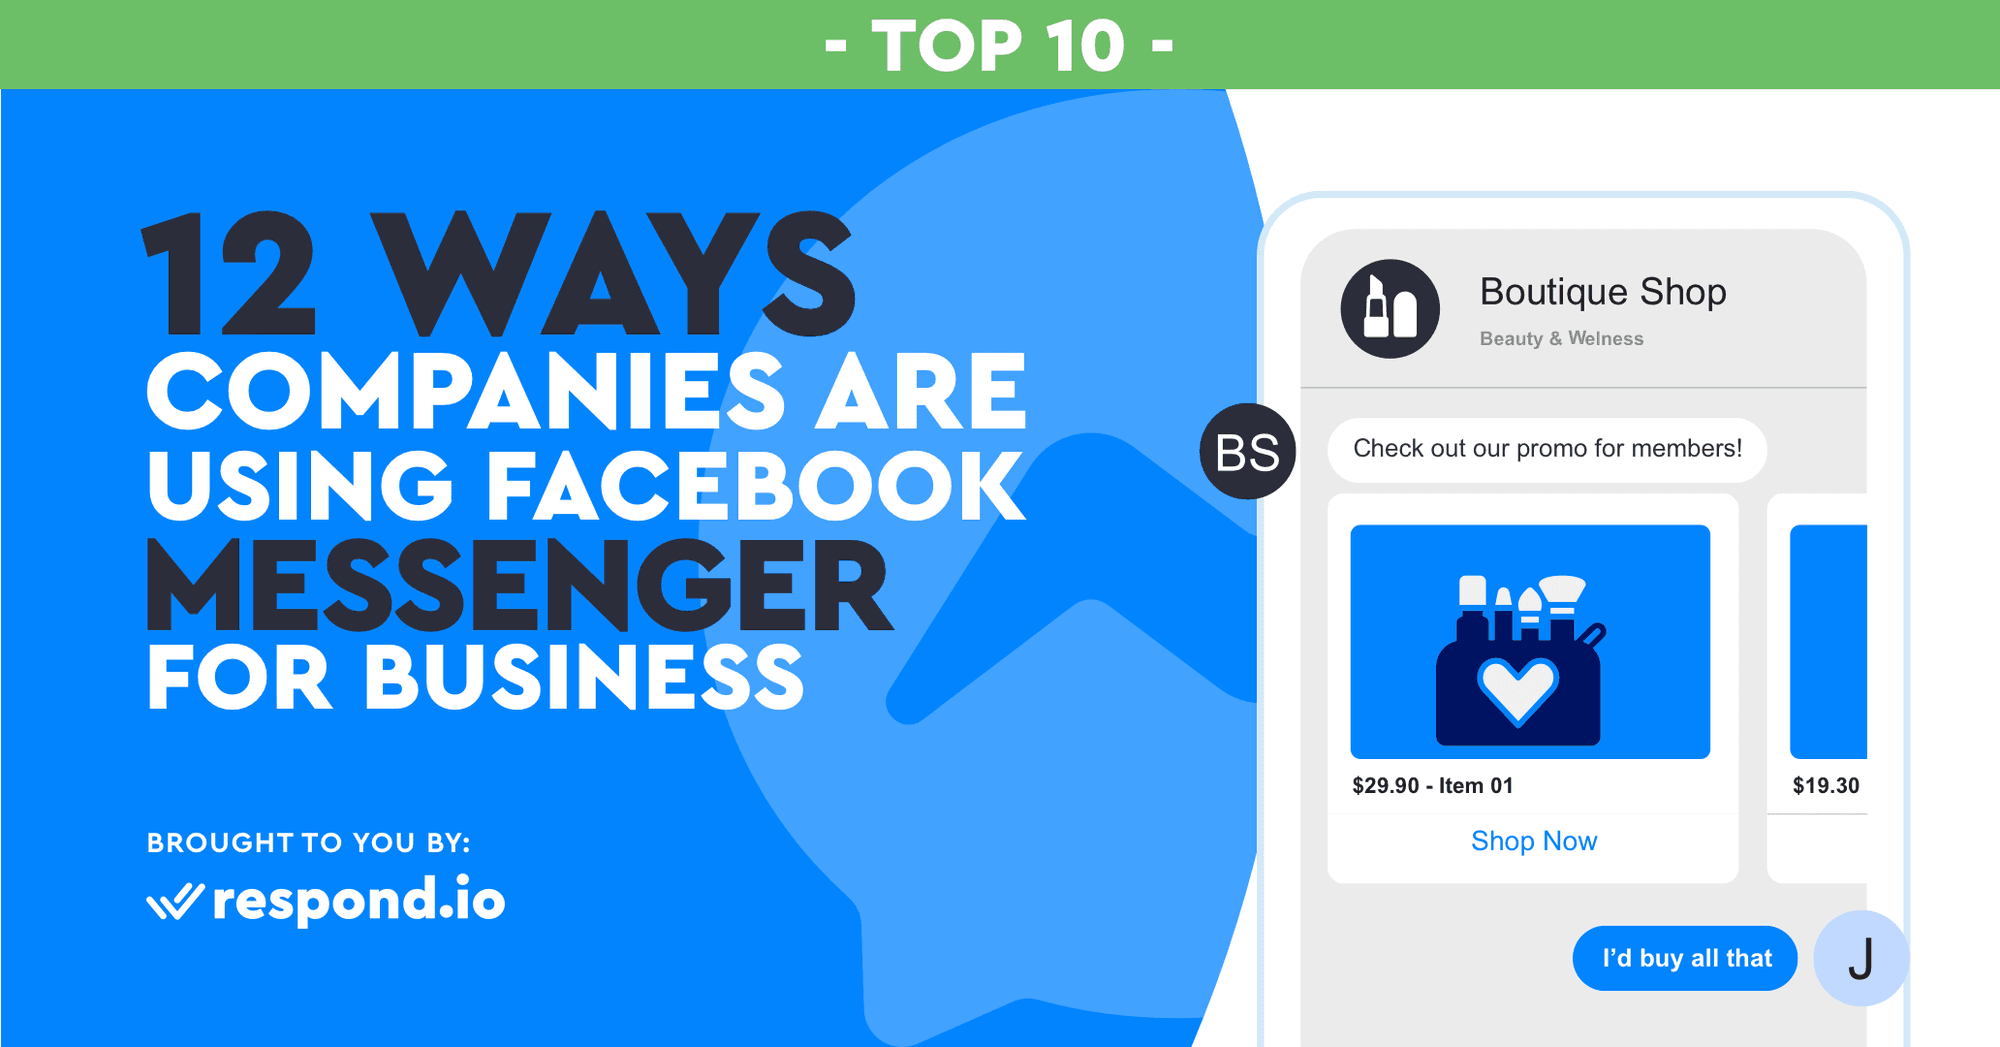 12 Ways Companies Are Using Facebook Messenger for Business (May 2019)